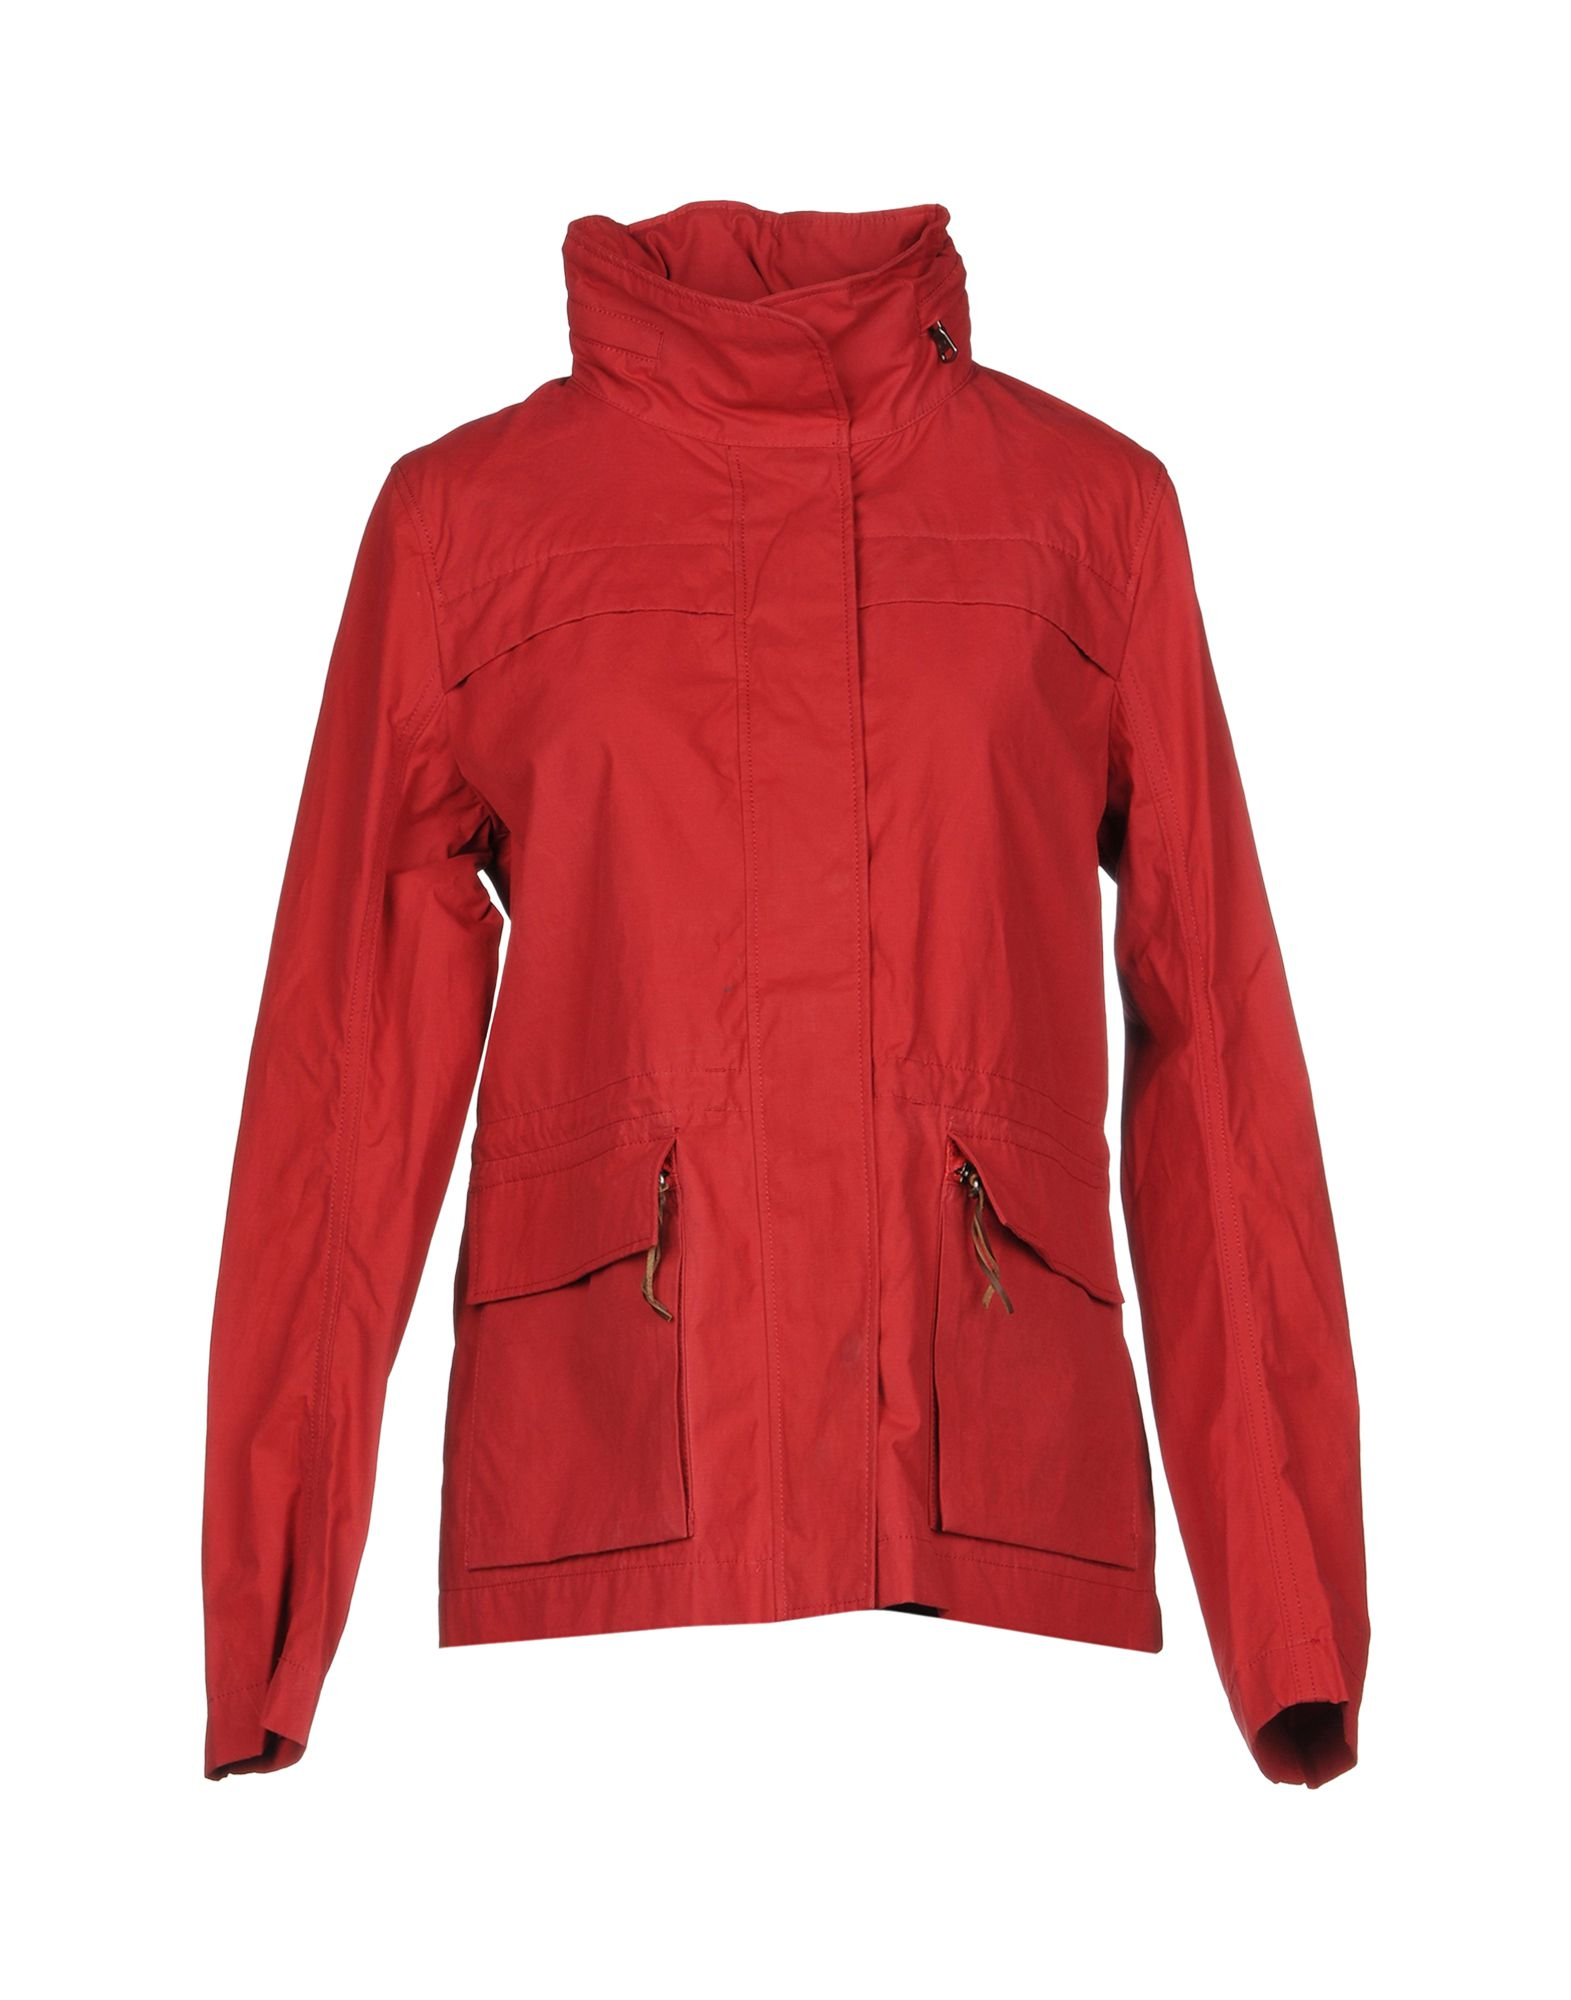 AIGLE Jackets in Red